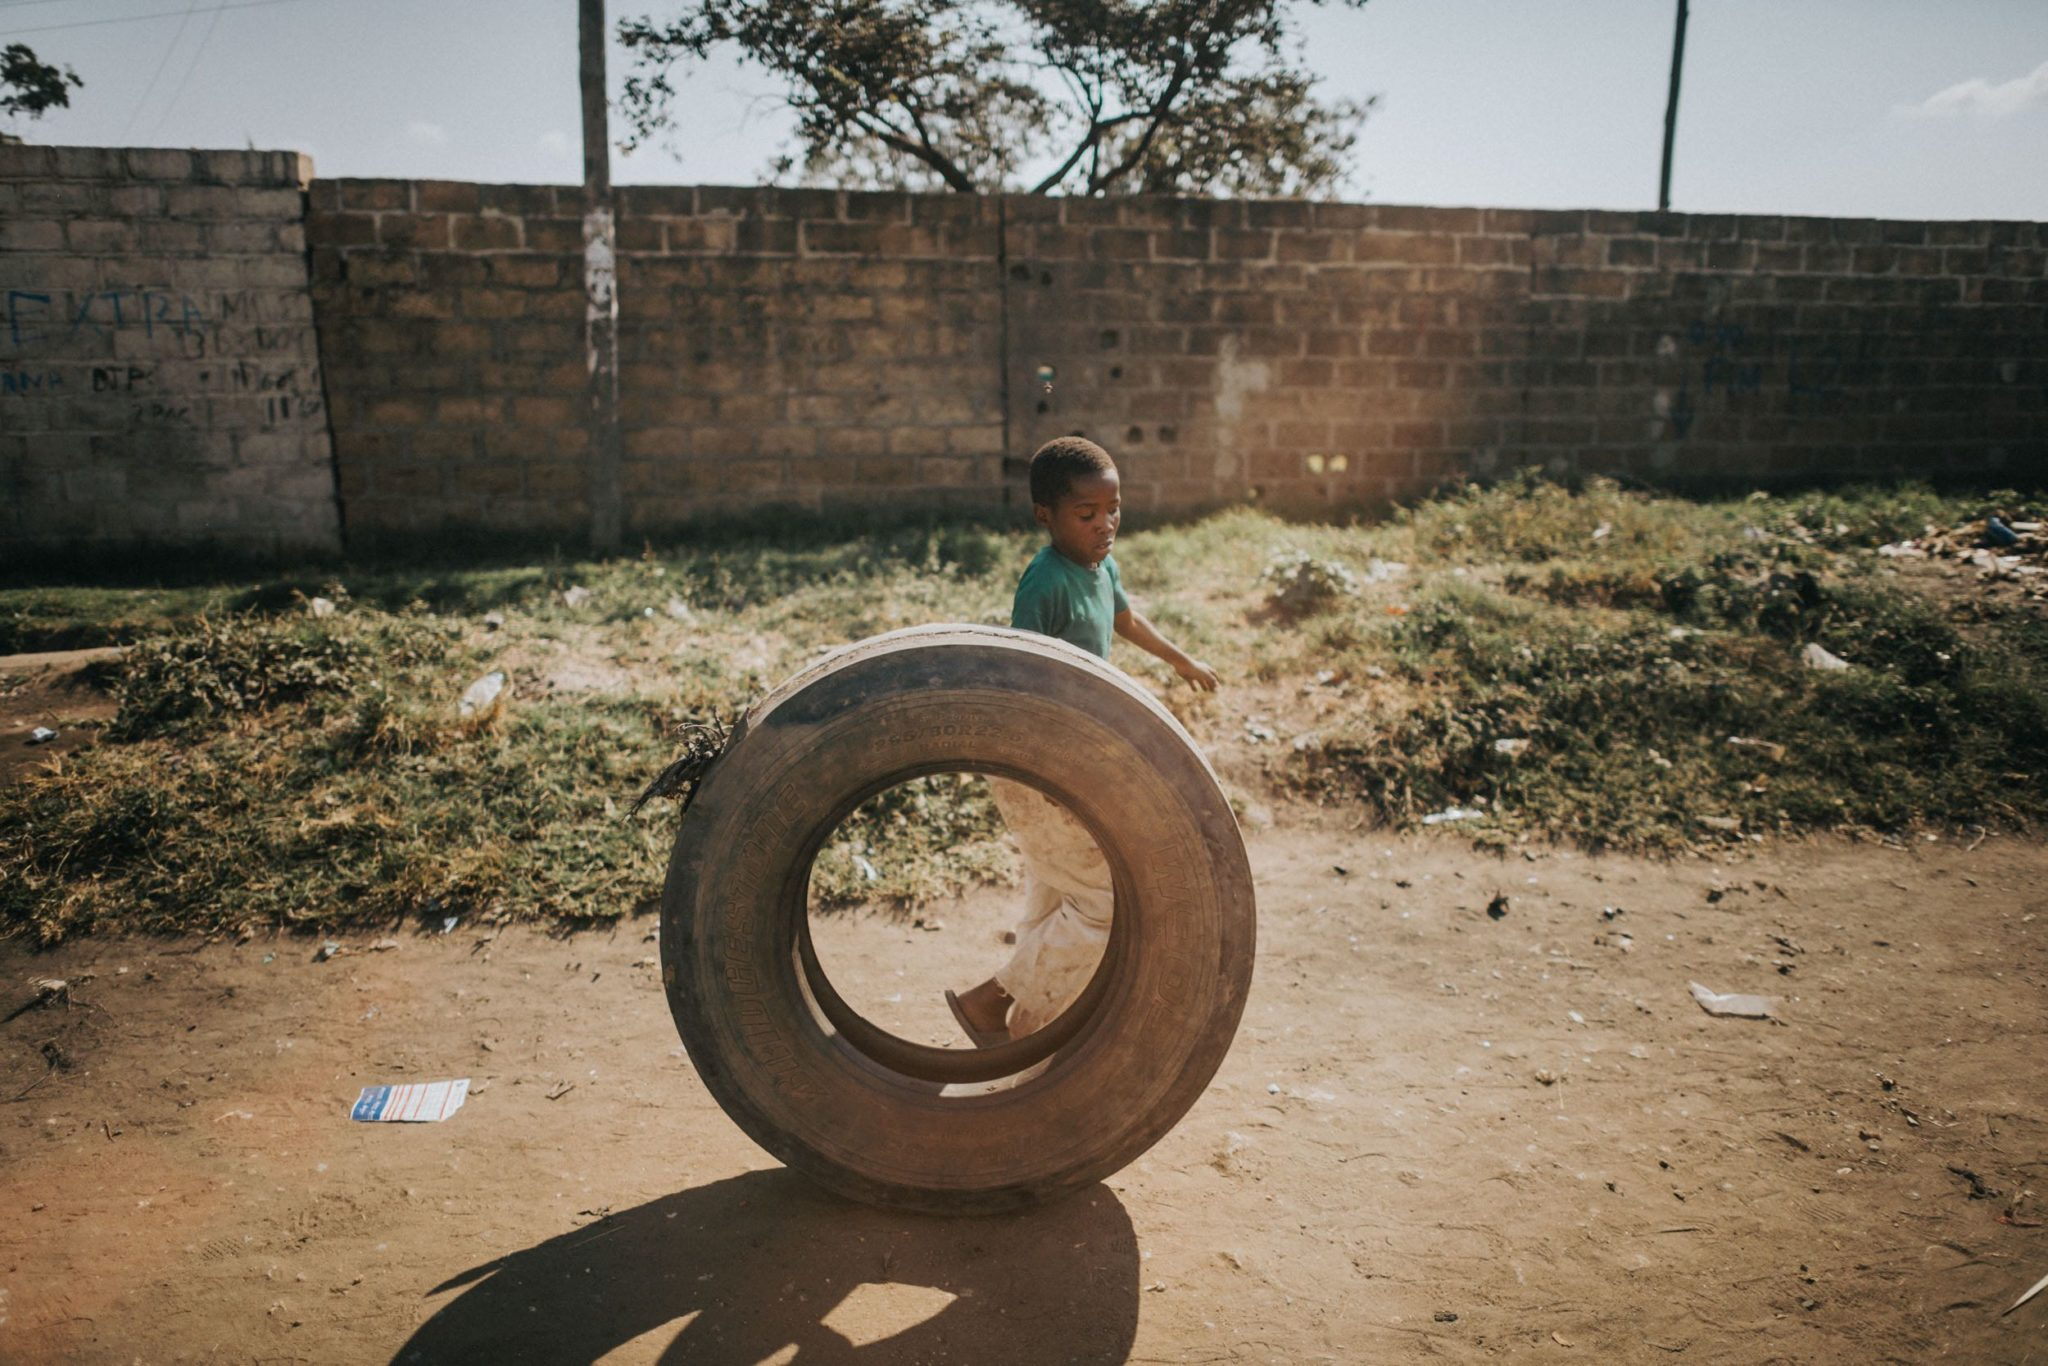 Fine Art Photography For Sale. Toys, Zambia Collection